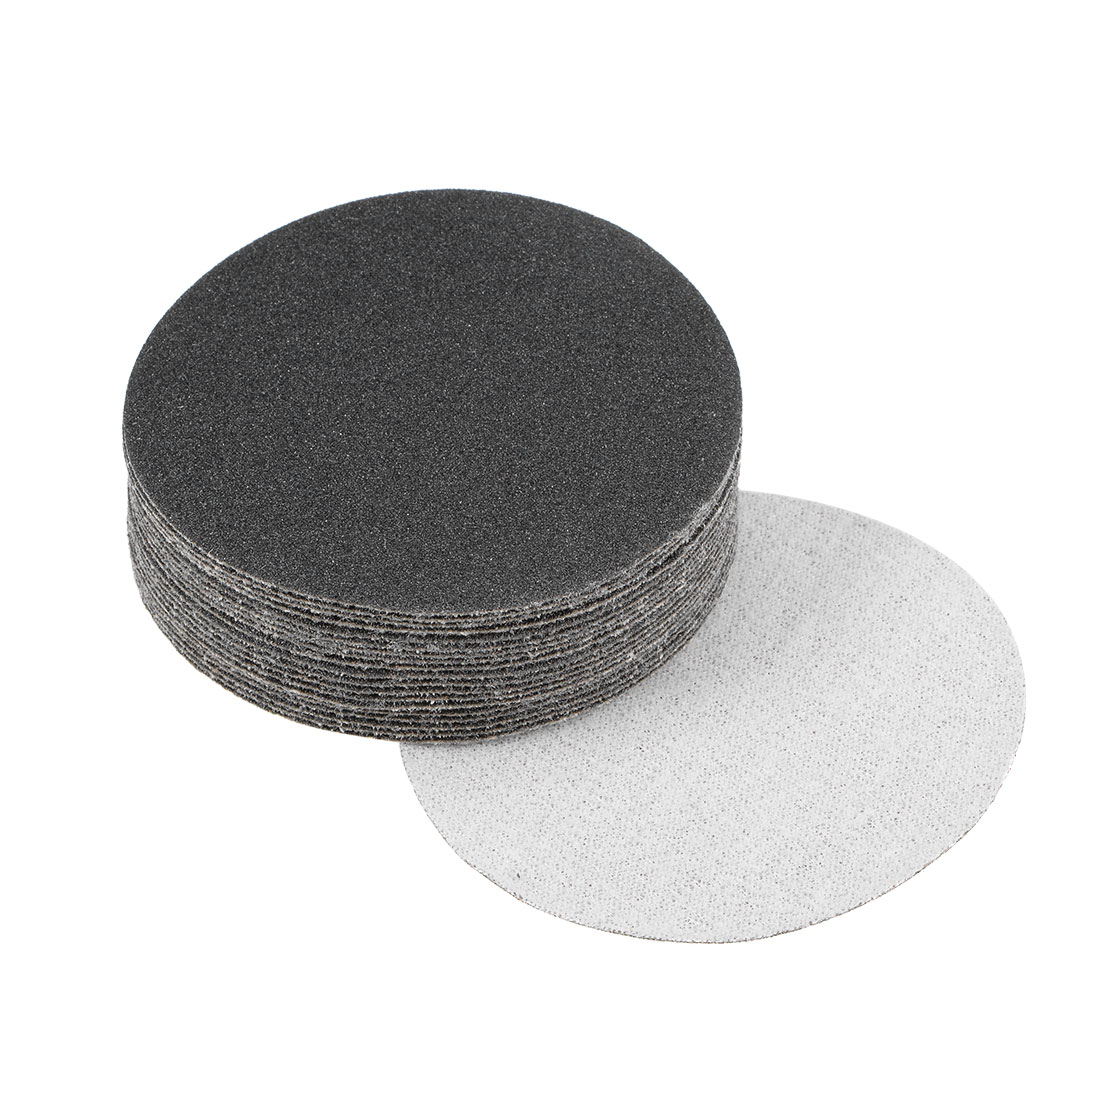 3 inch Wet Dry Discs 120 Grit Hook and Loop Sanding Disc Silicon Carbide 20pcs